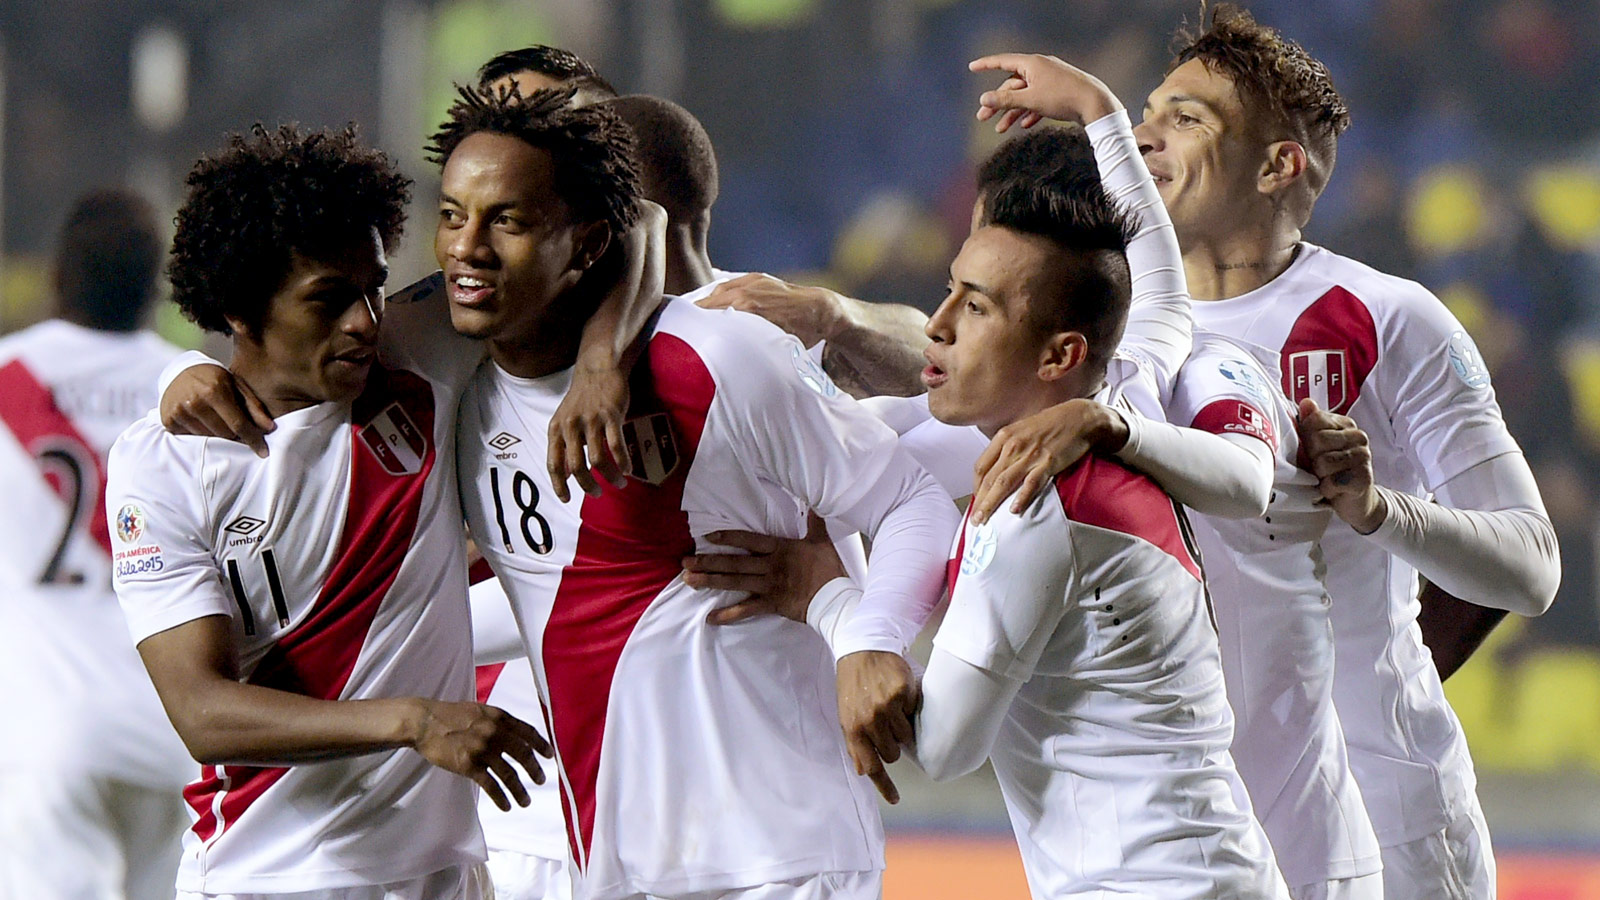 Peru defeats Paraguay to claim third place in Copa America